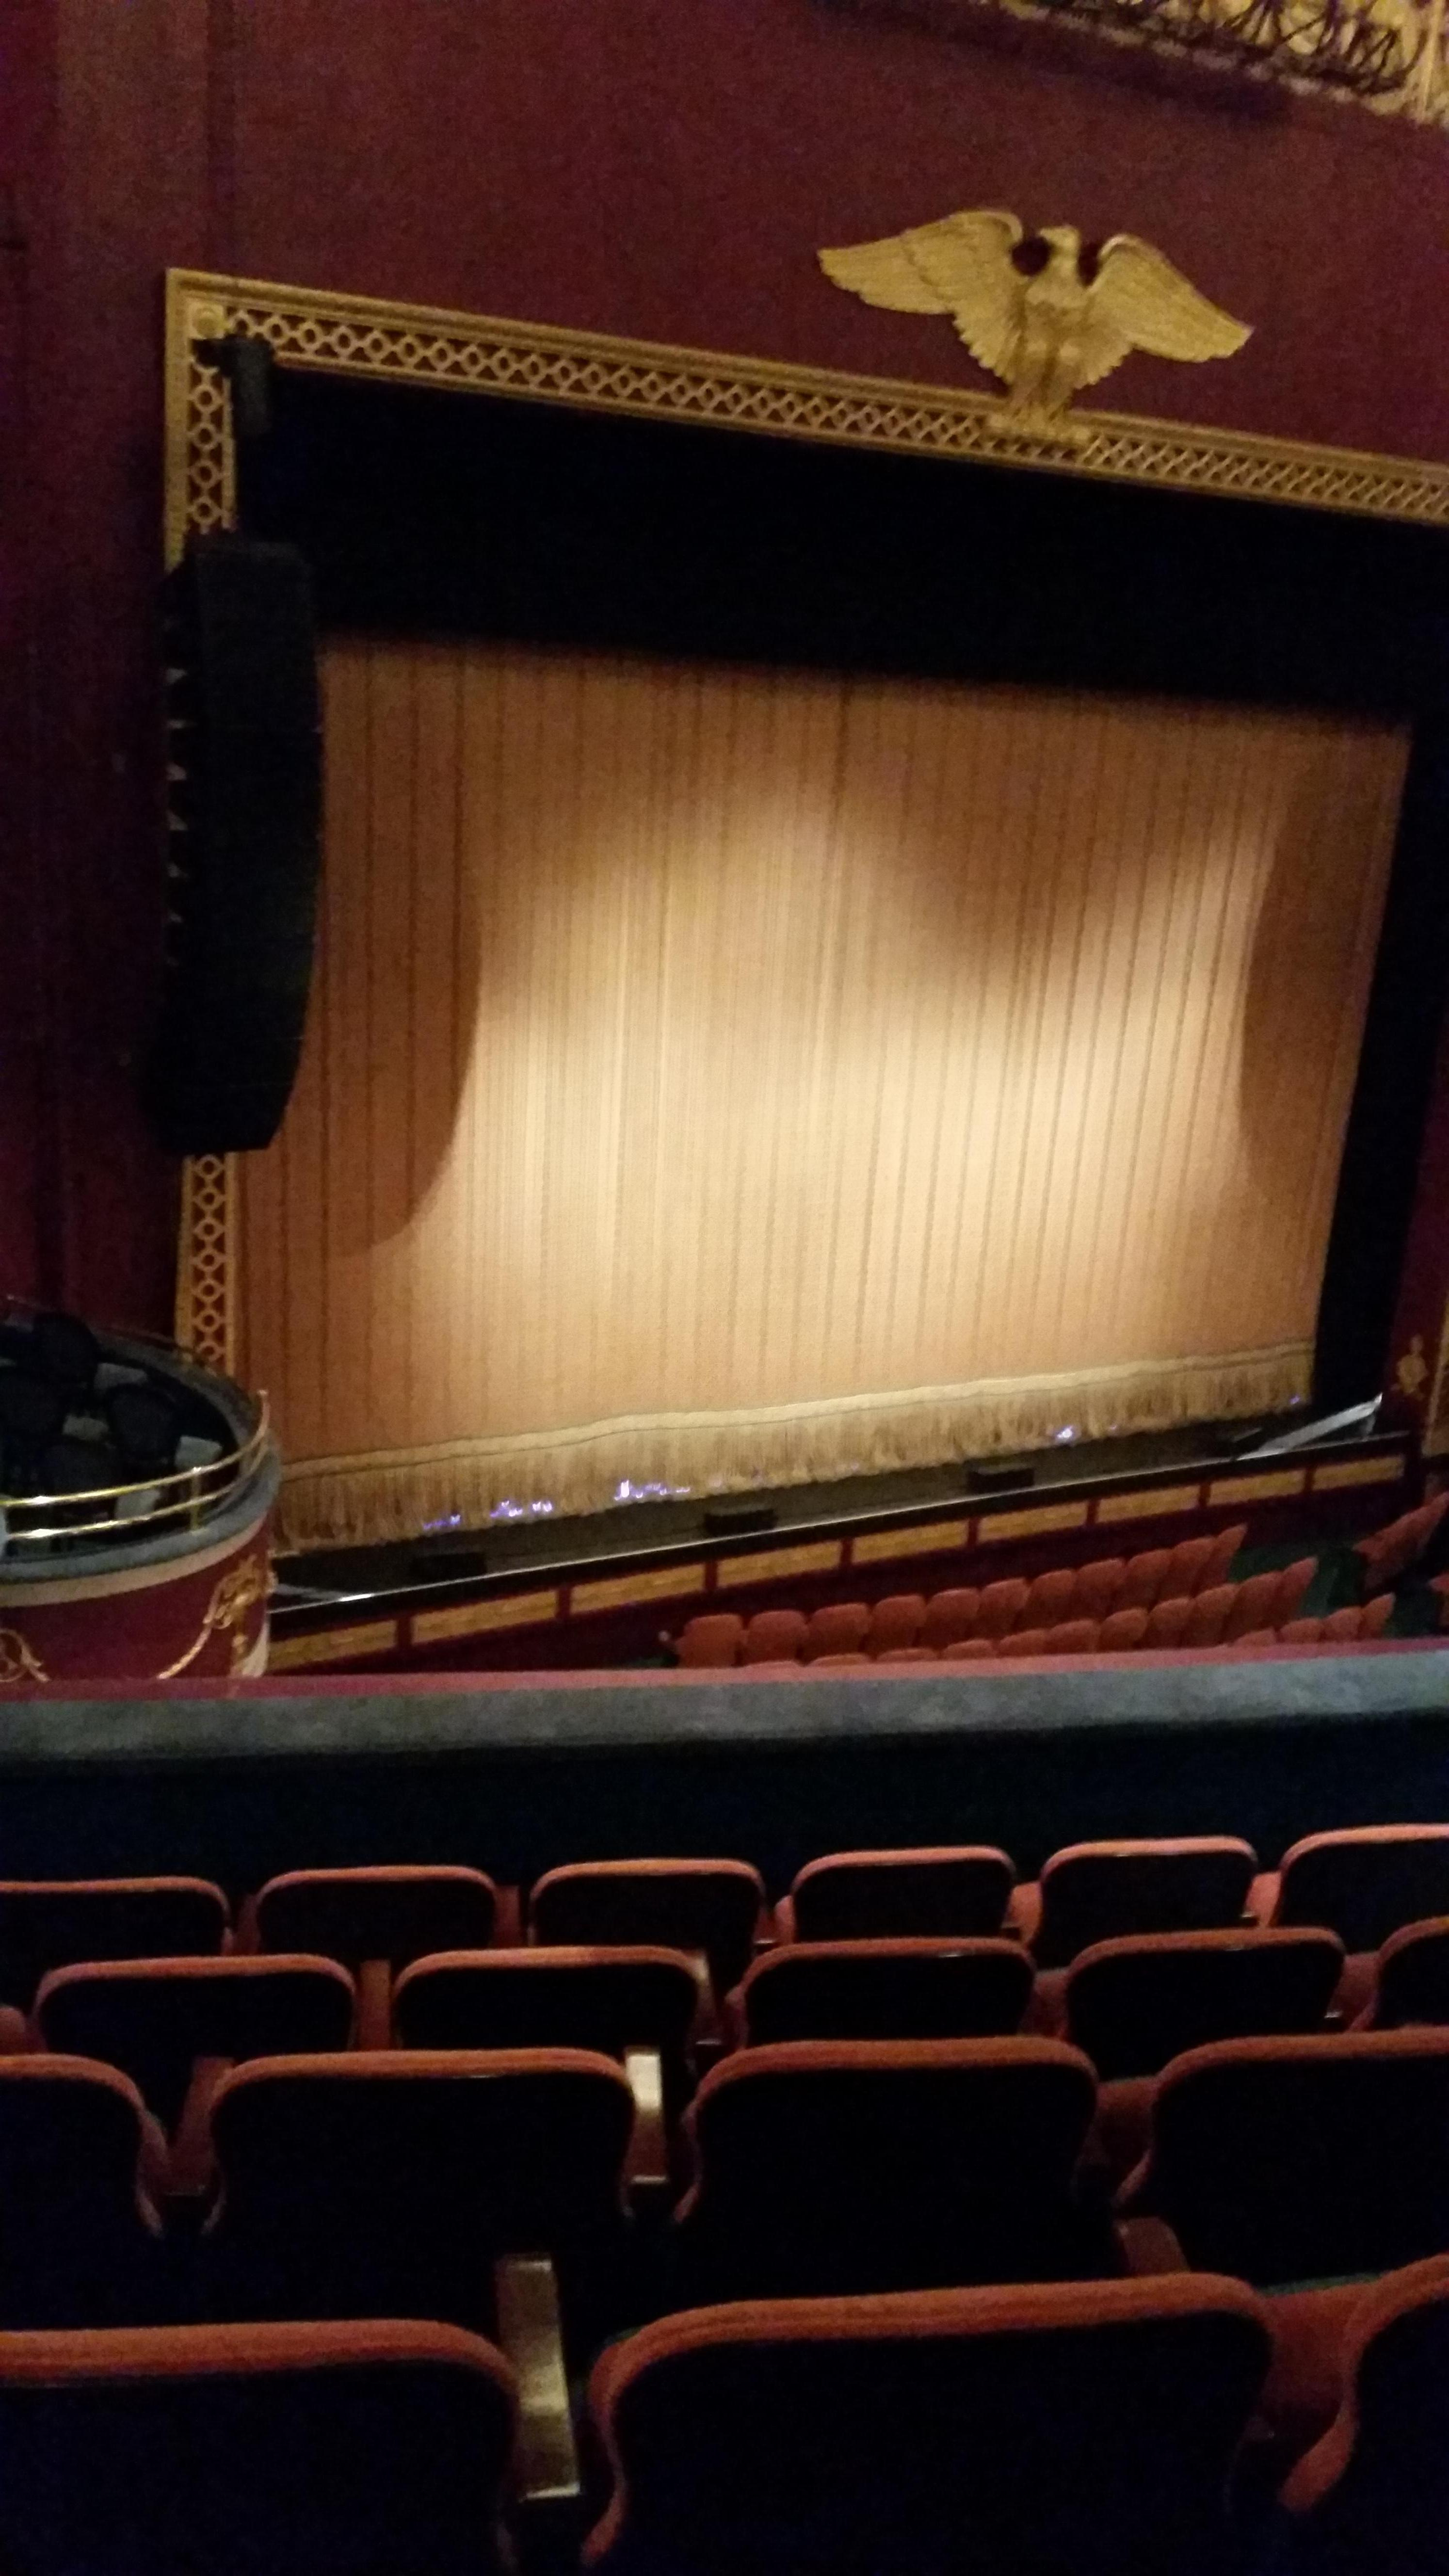 National Theatre (DC) Section Mezzanine Row F Seat 25